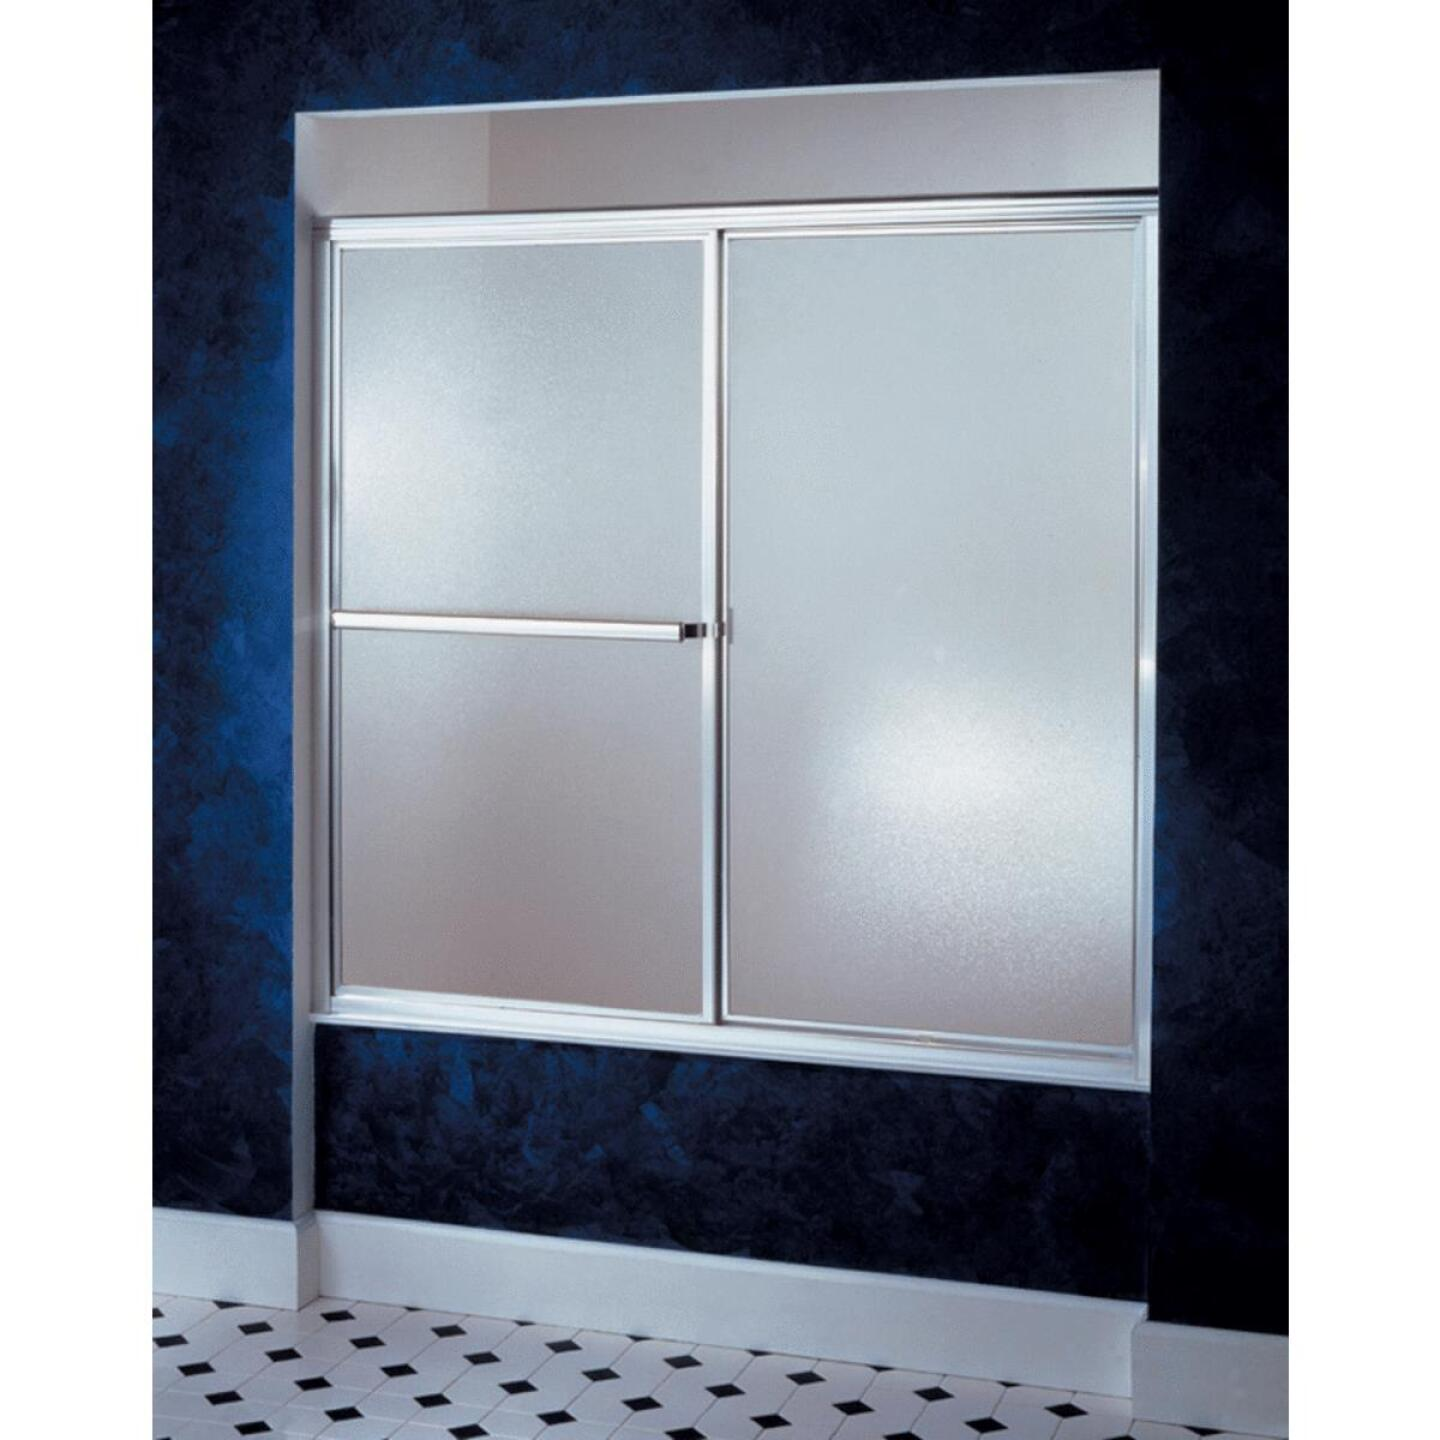 Sterling Deluxe Framed 59-3/8 In. W. X 56-1/4 In. H. Chrome Rain Glass Sliding Tub Door Image 1